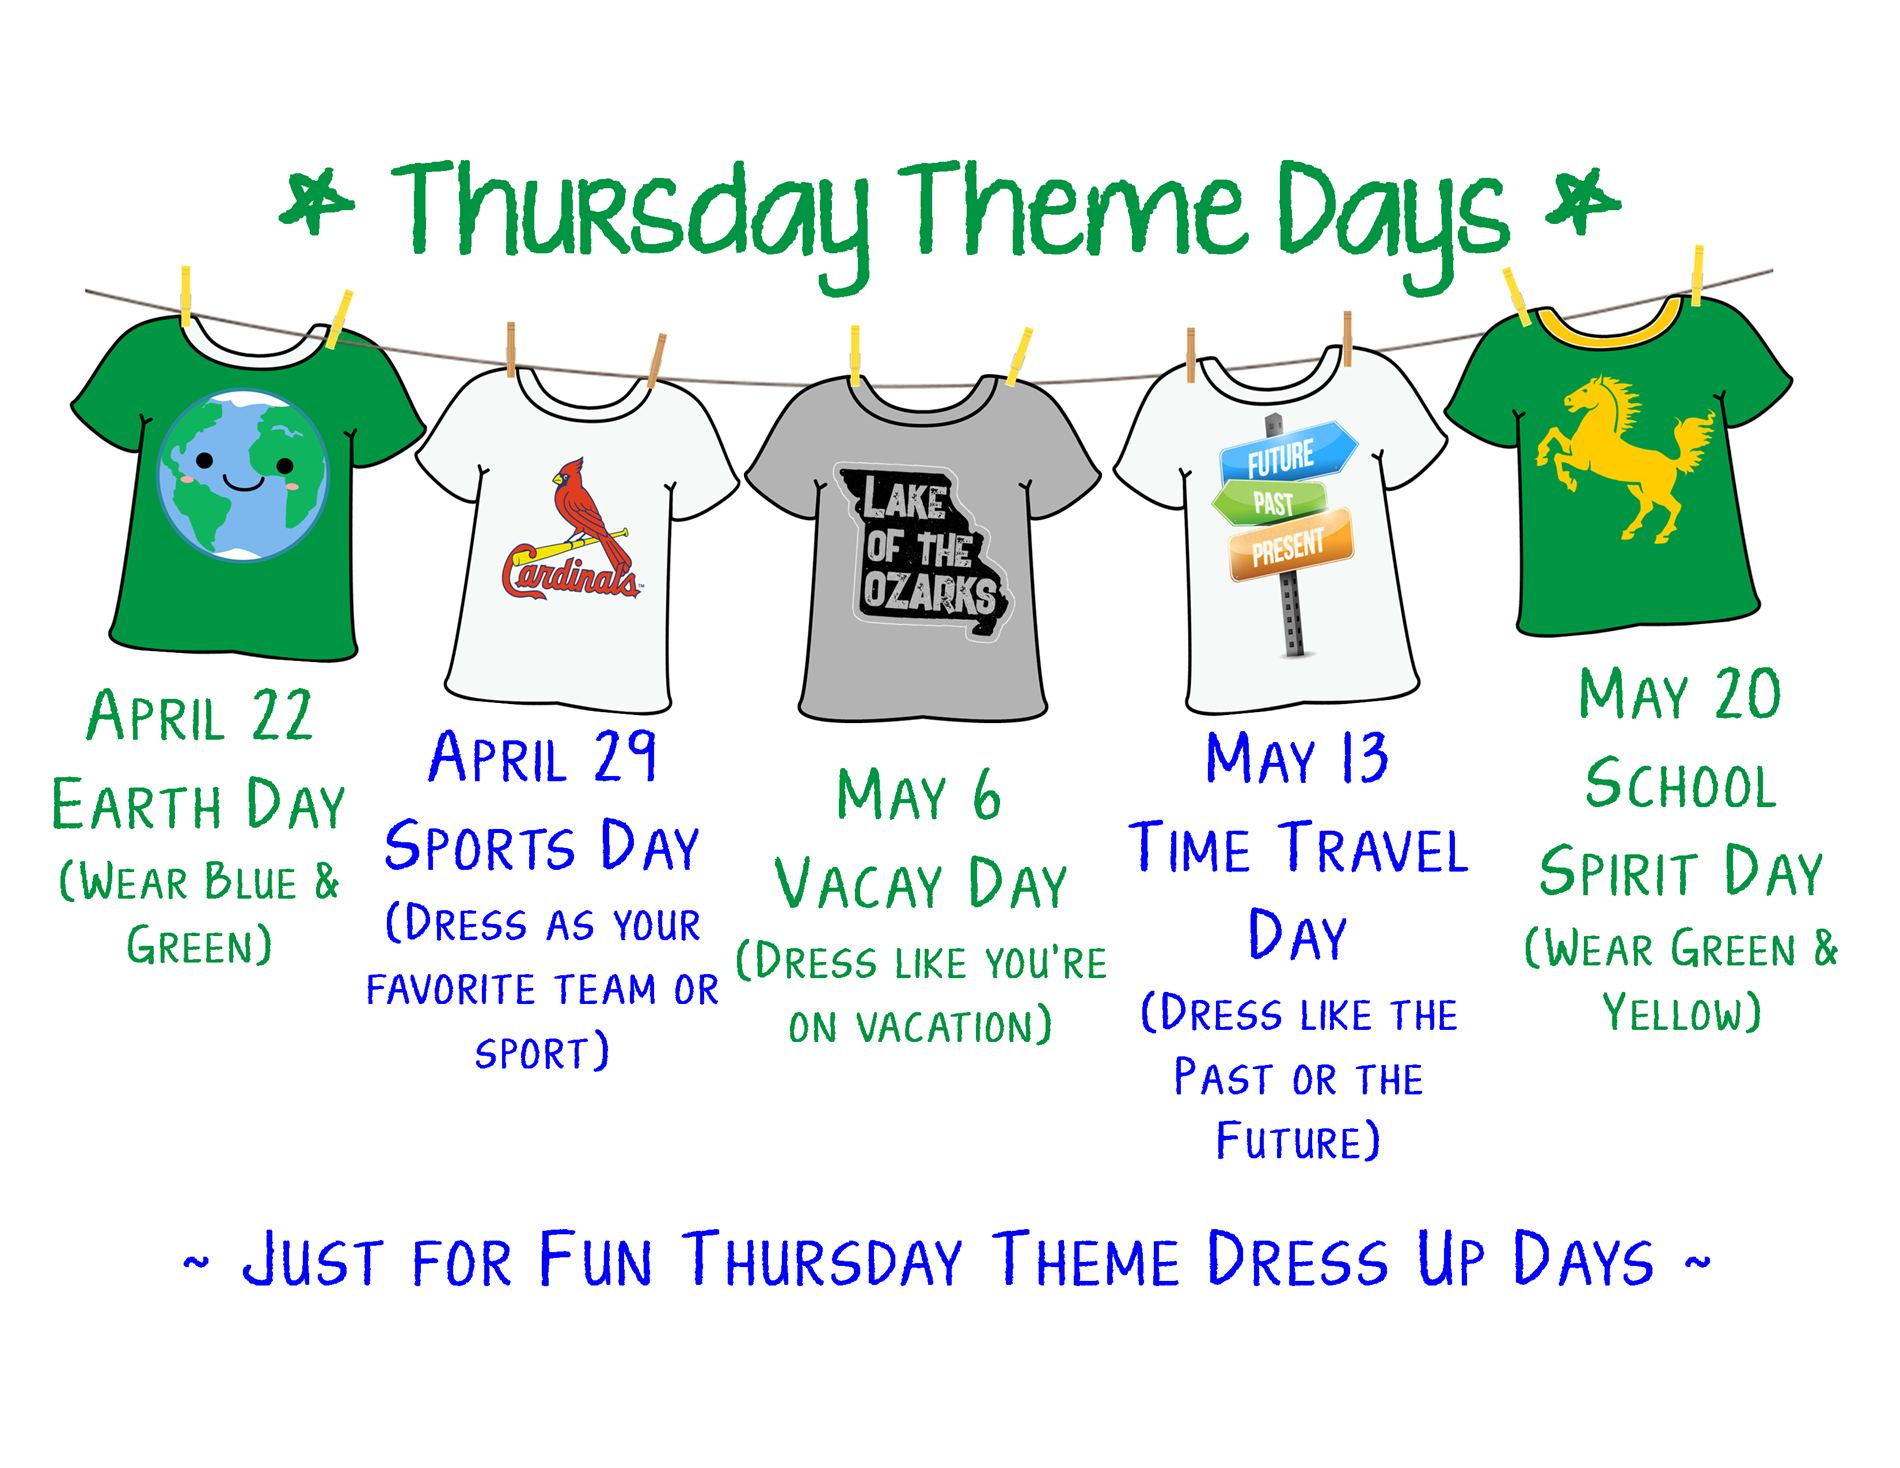 Thursday Theme Days